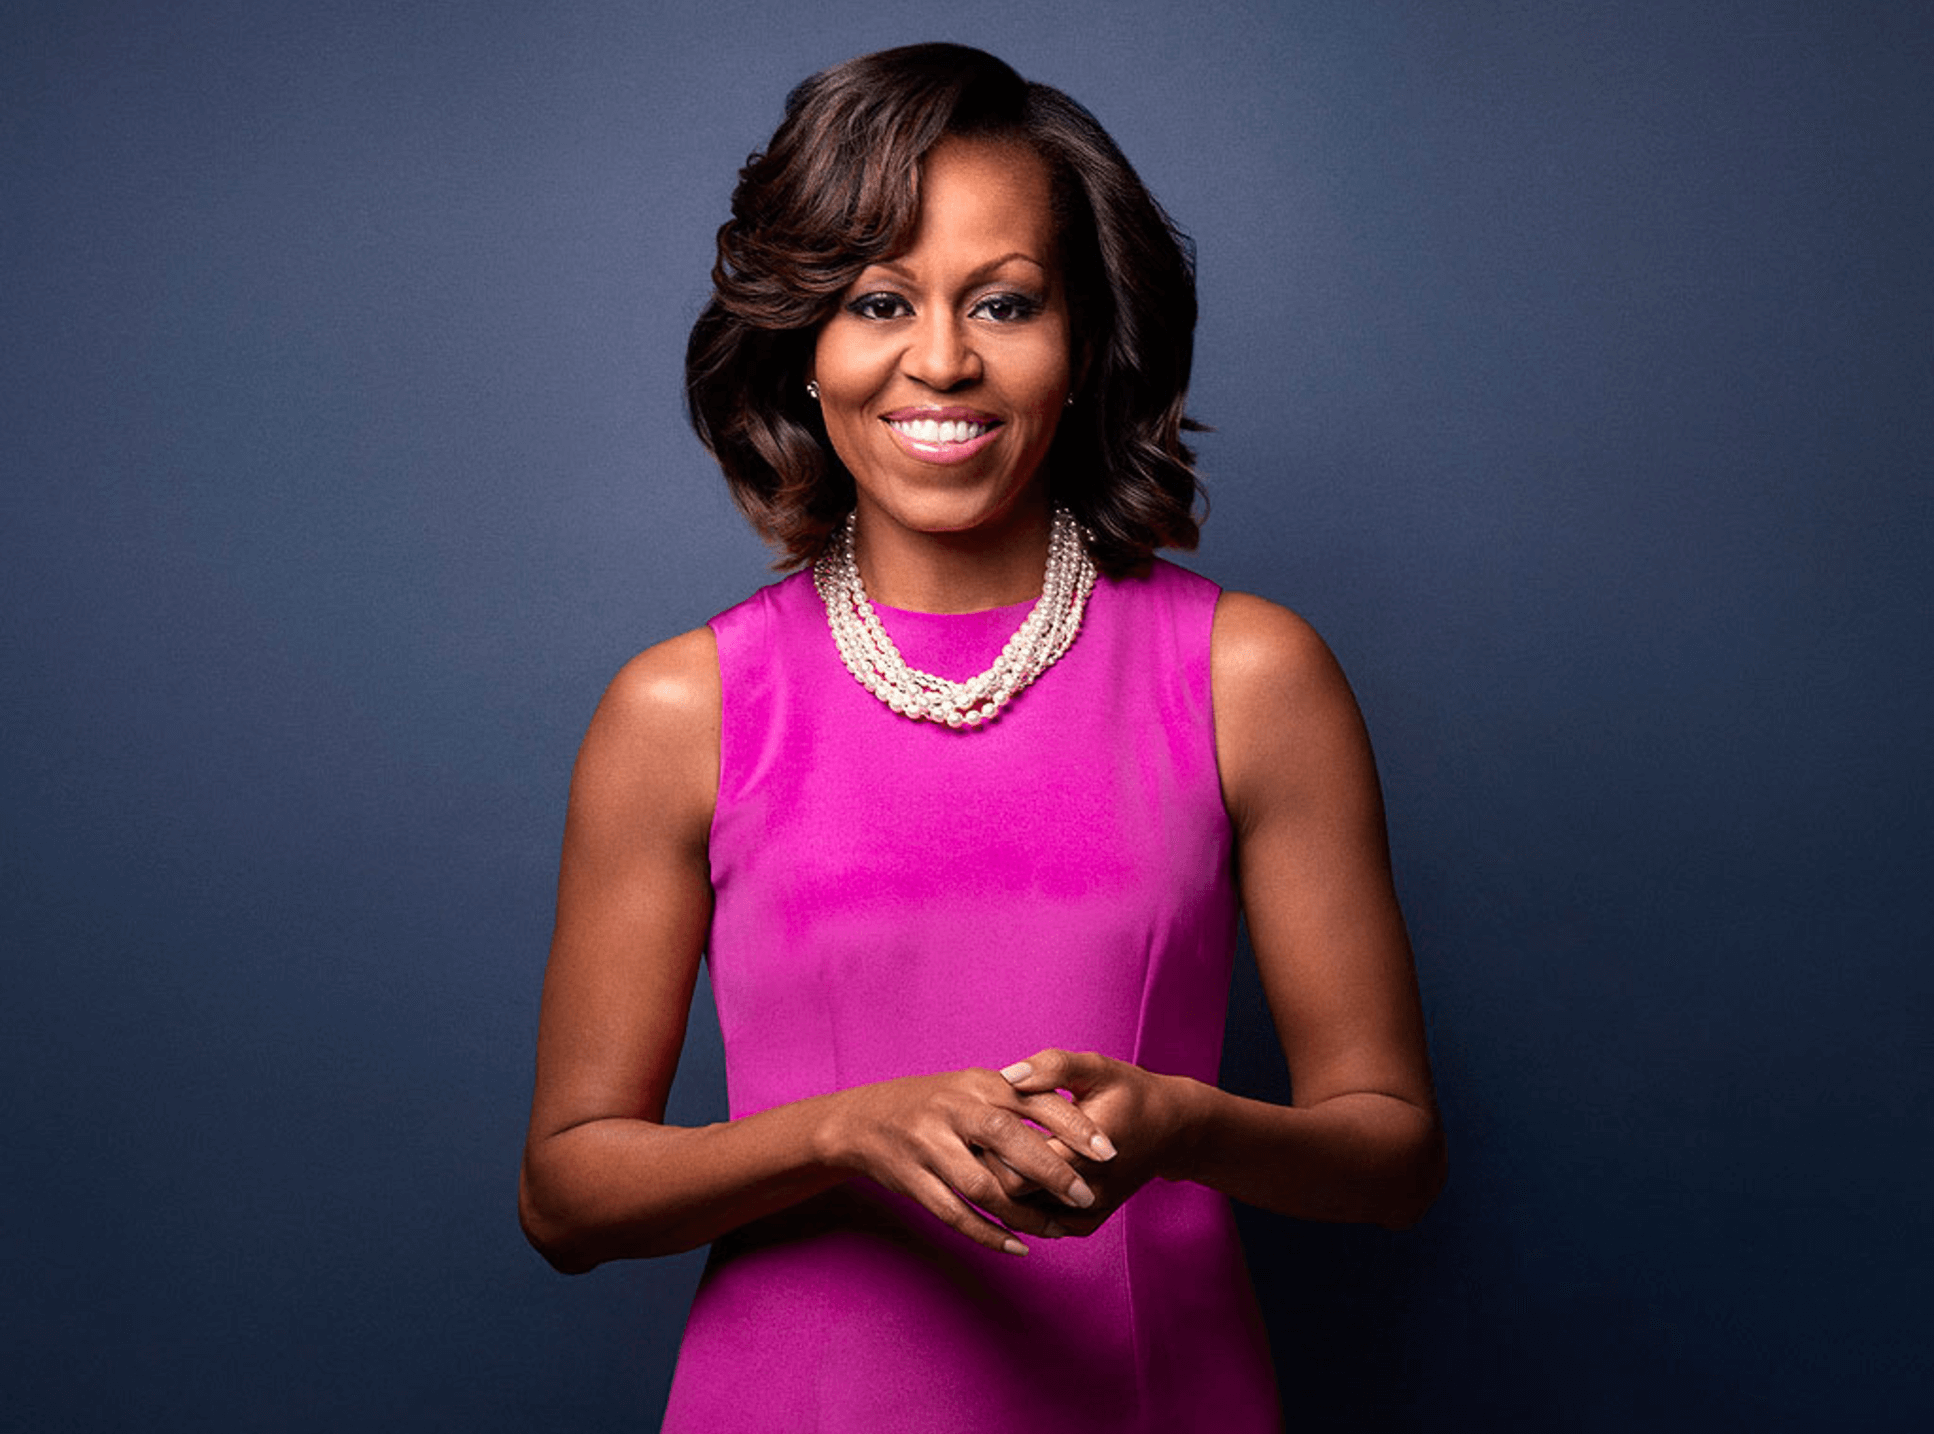 Michelle Obama is a keynote speaker at Hubspot's Inbound 2017 conference